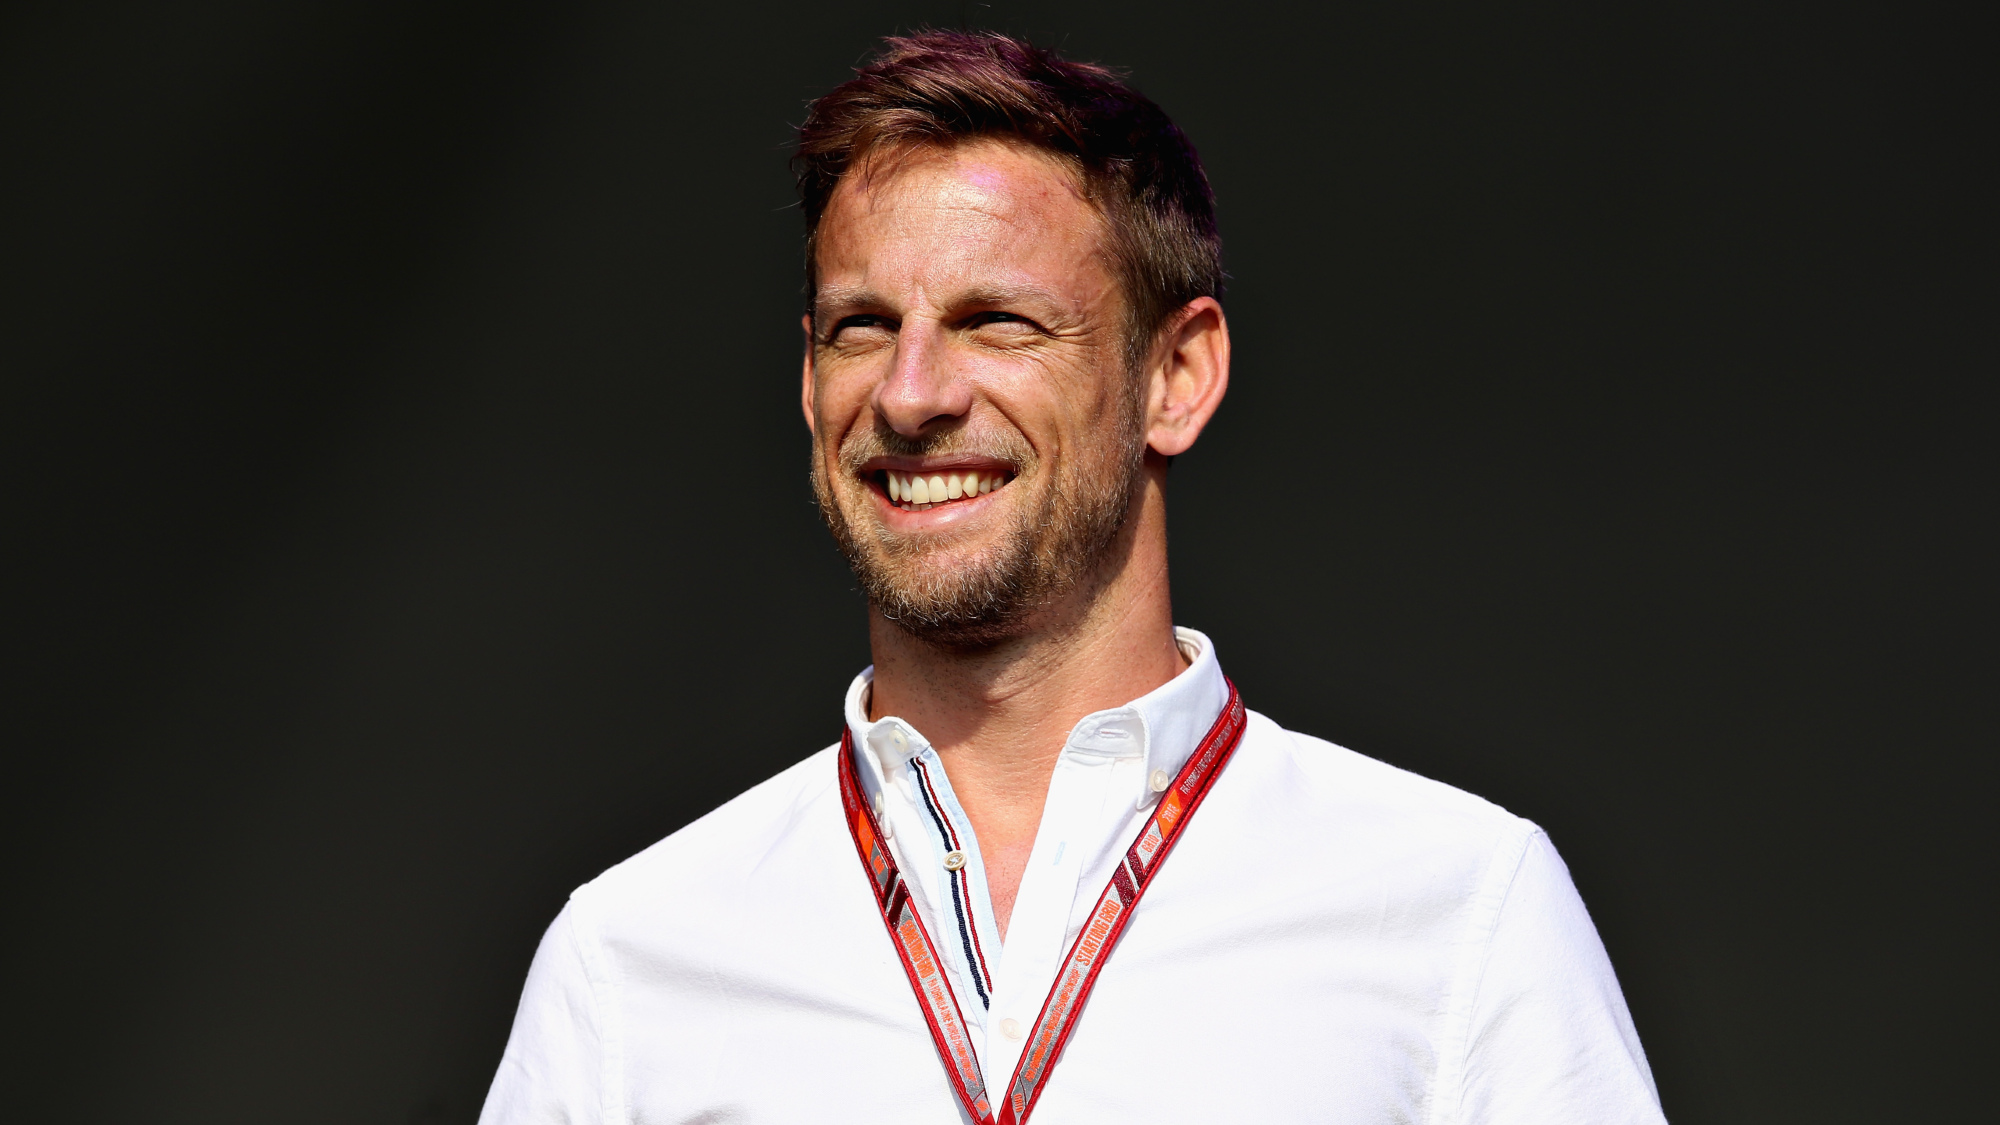 A private audience with Jenson Button